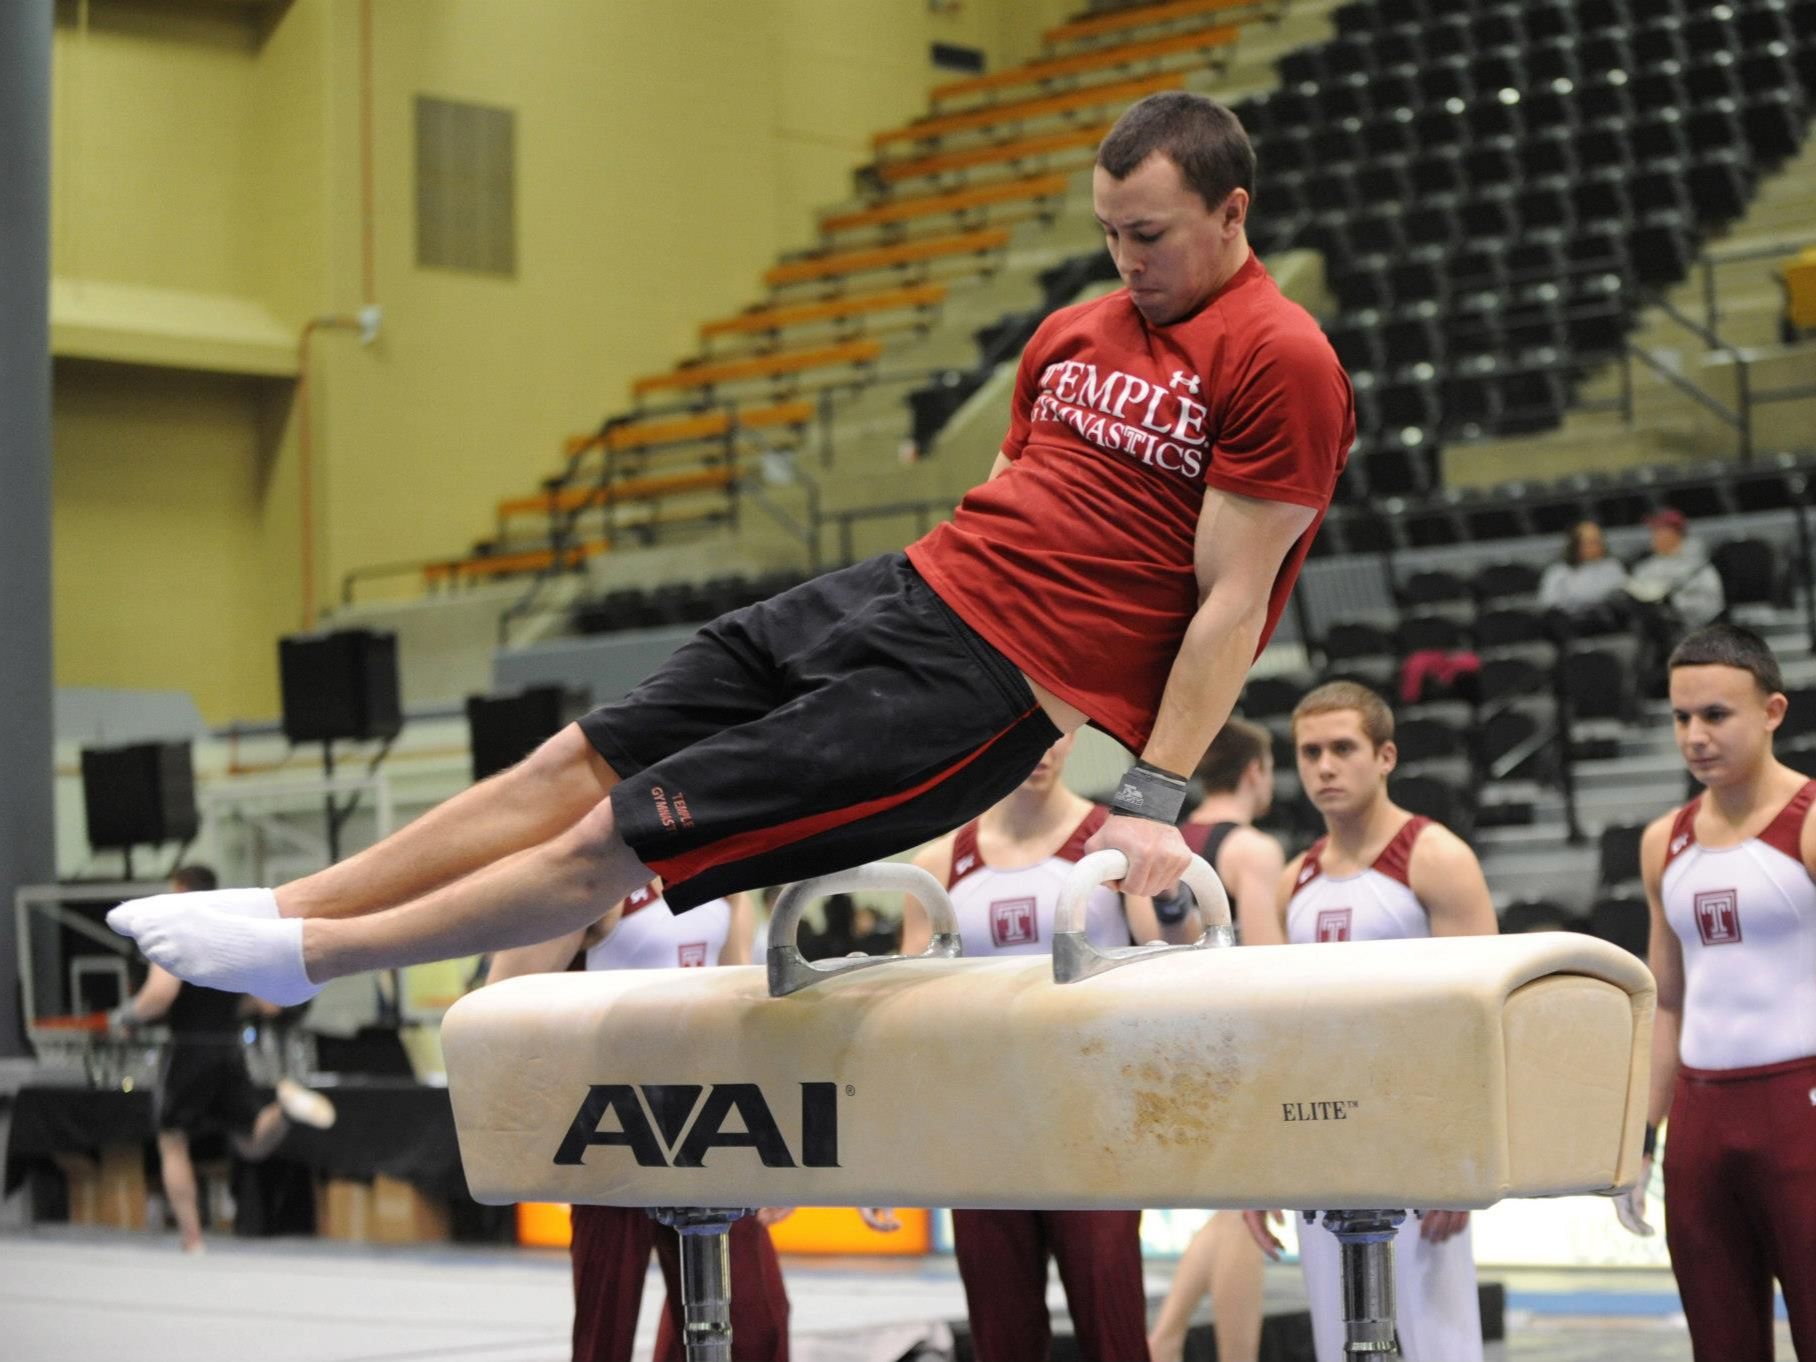 Allan on the pommel horse during the West Point Open in January 2013 while attending Temple University.